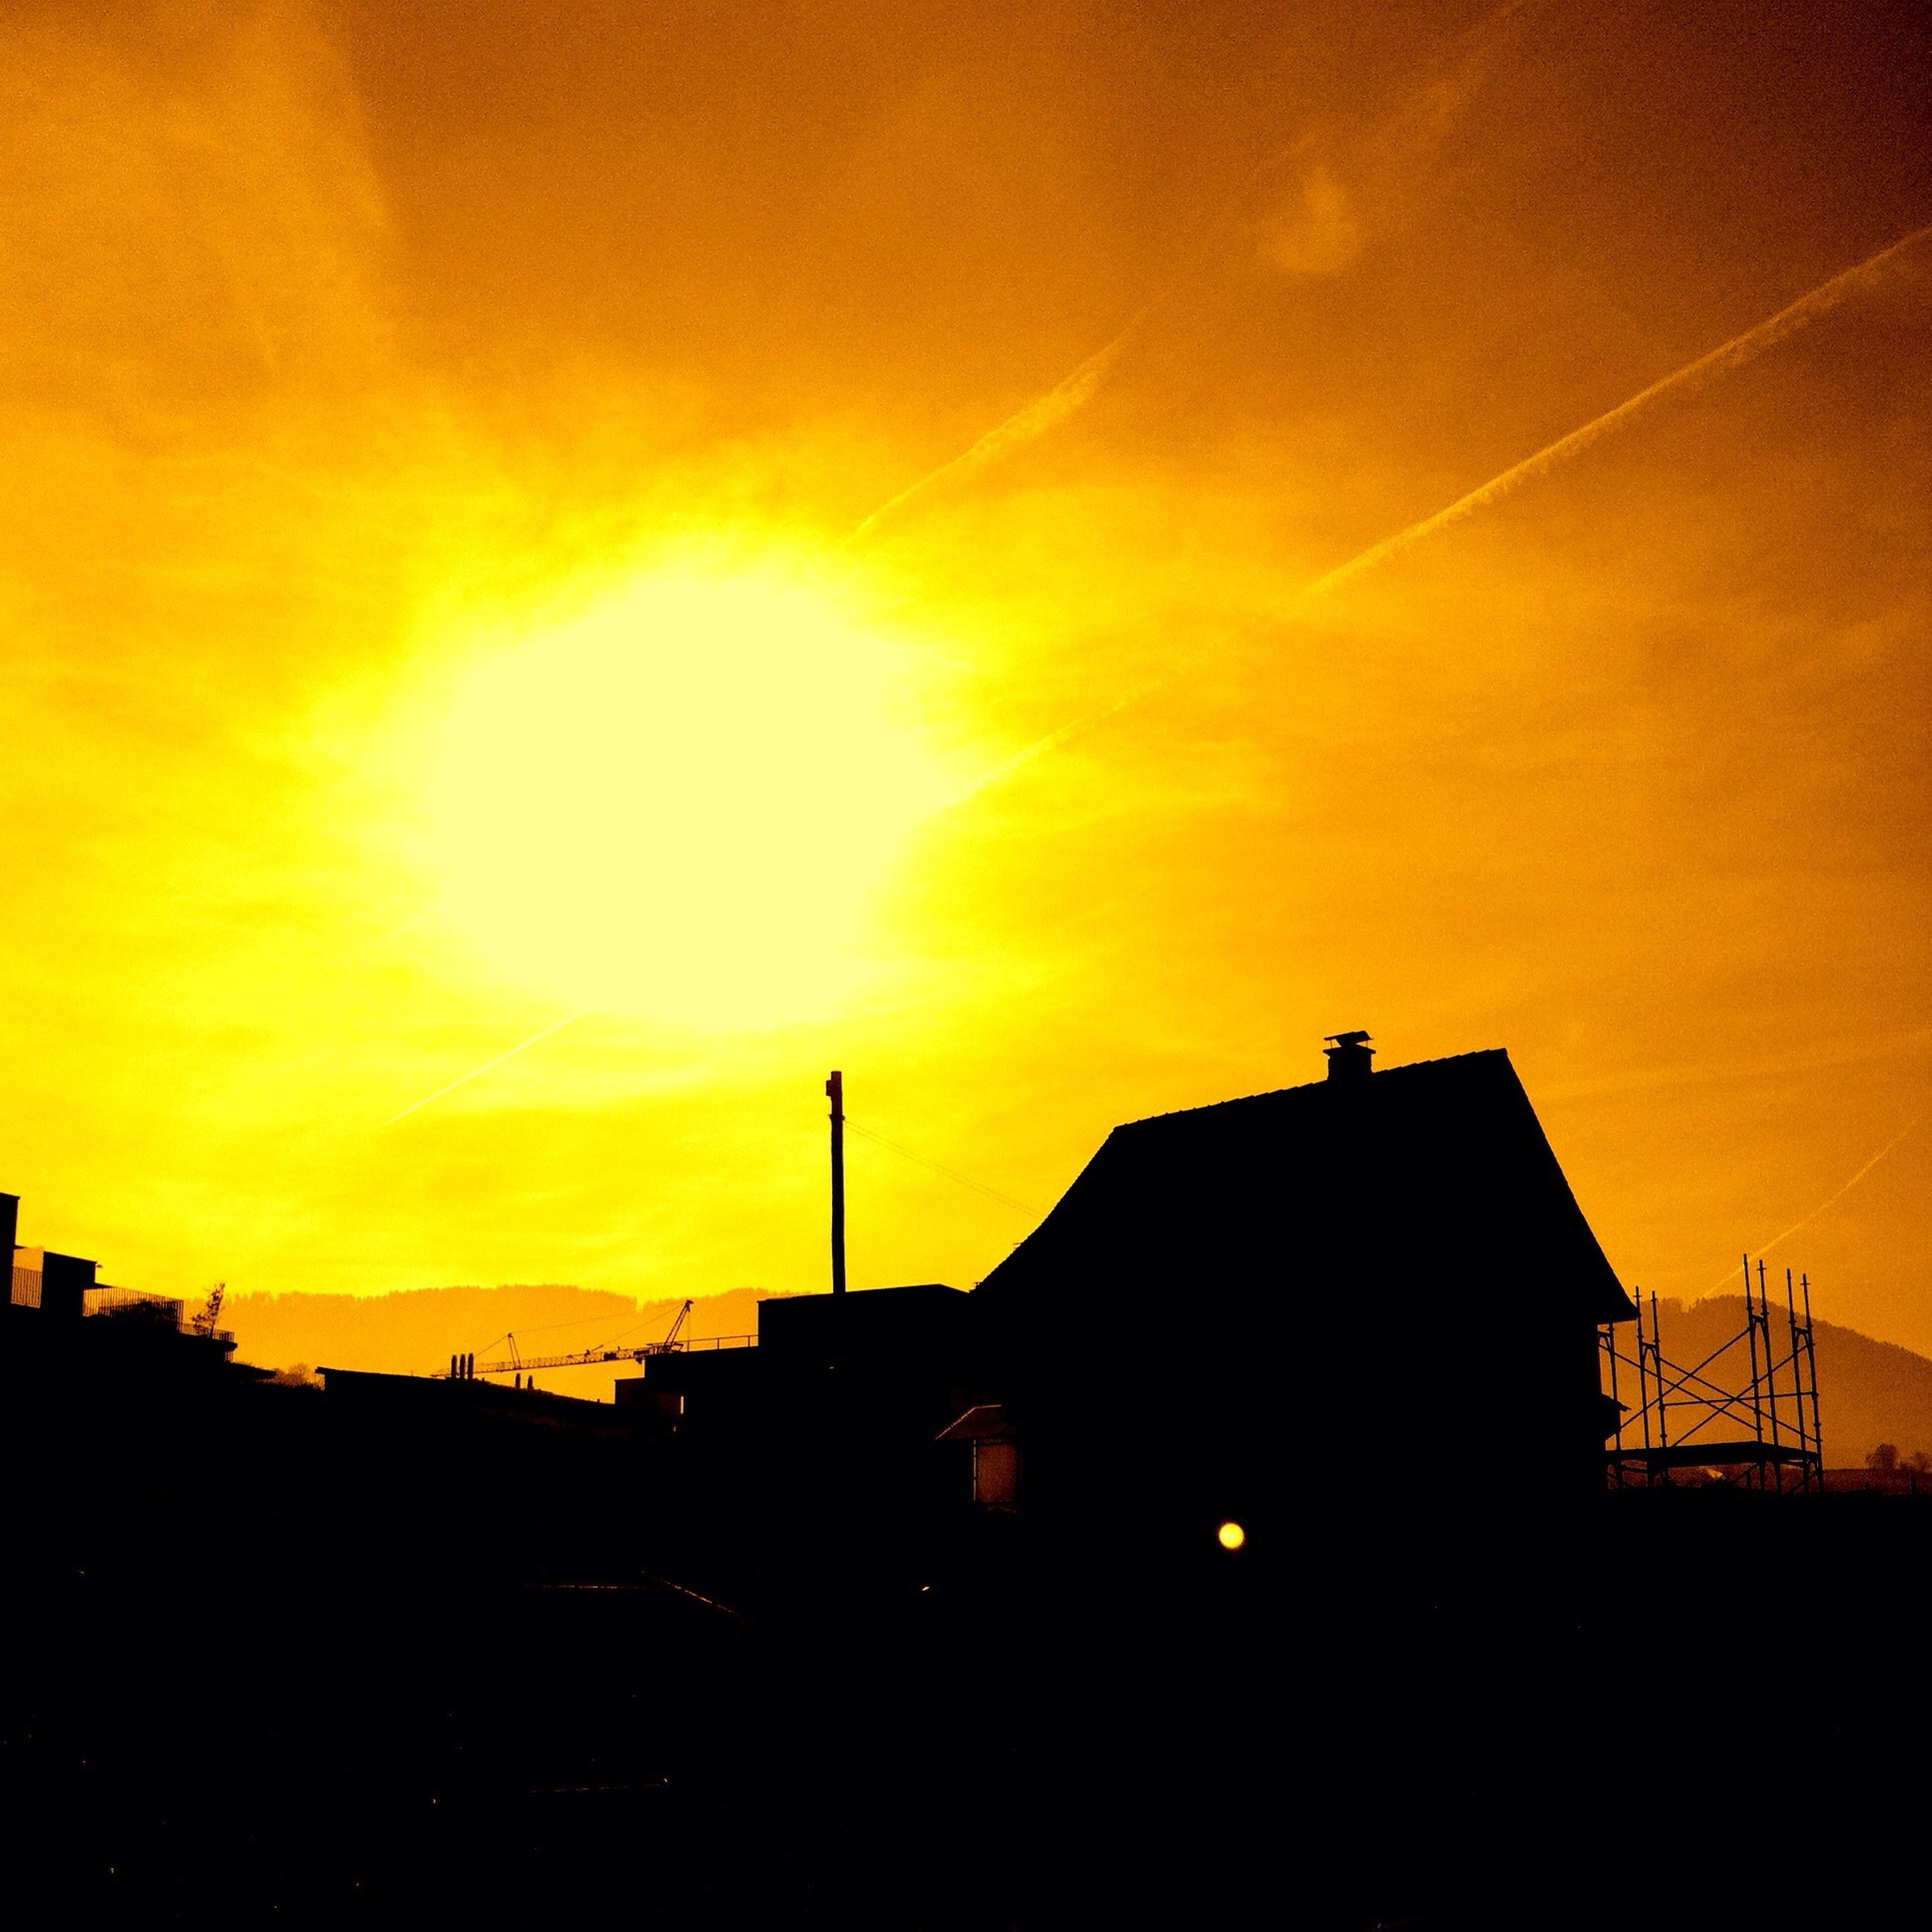 sunset, silhouette, orange color, architecture, built structure, building exterior, sky, low angle view, sun, city, yellow, building, dramatic sky, outdoors, beauty in nature, industry, scenics, nature, no people, cloud - sky